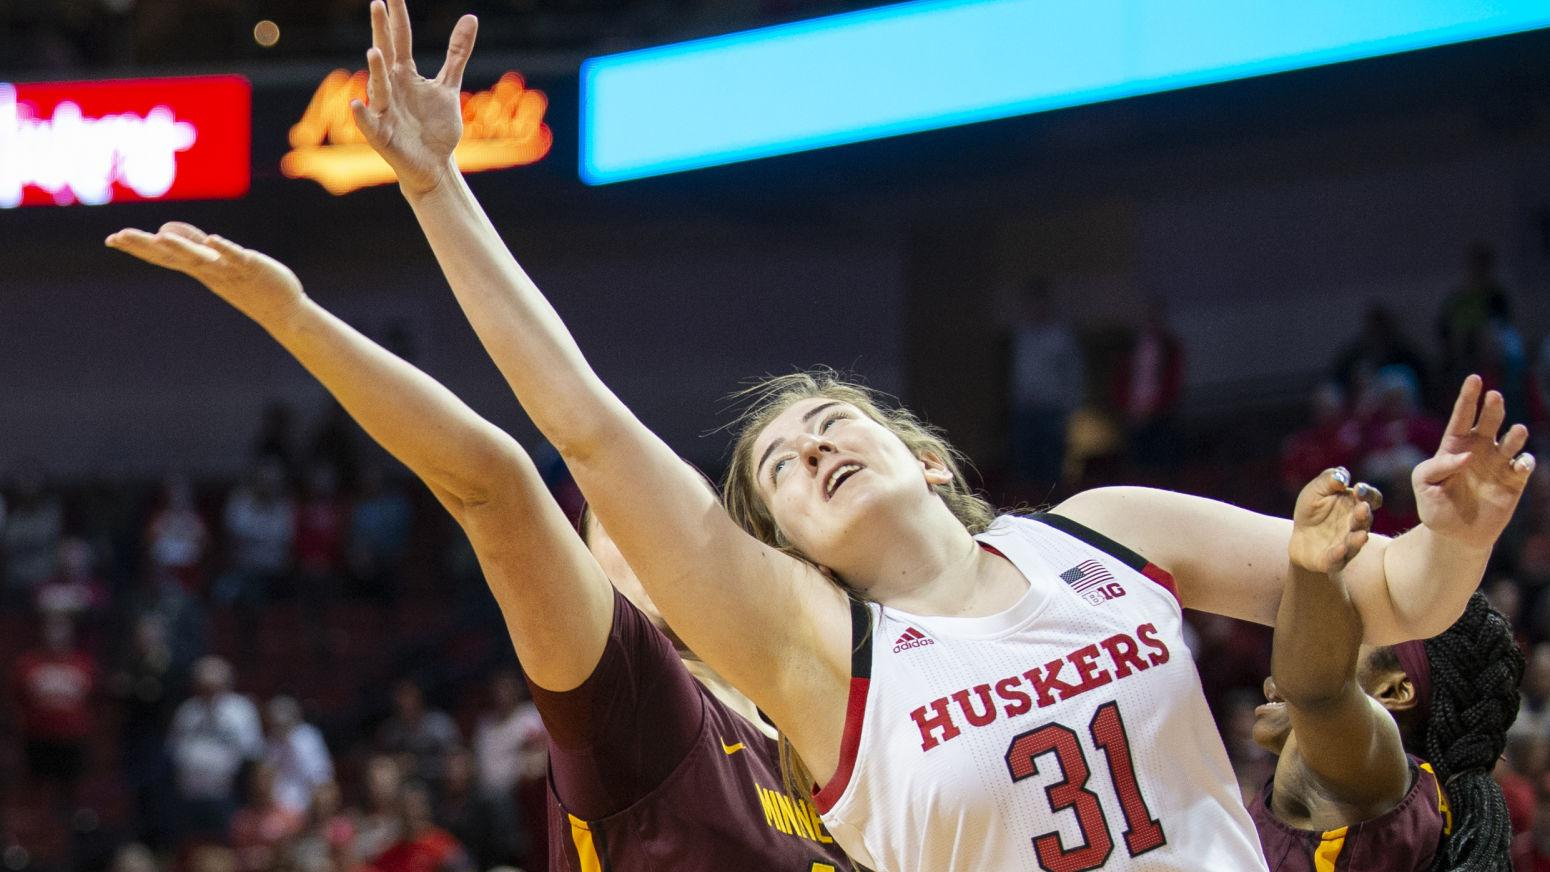 Nebraska women rally to beat No. 23 Minnesota to end streak of losses against ranked teams